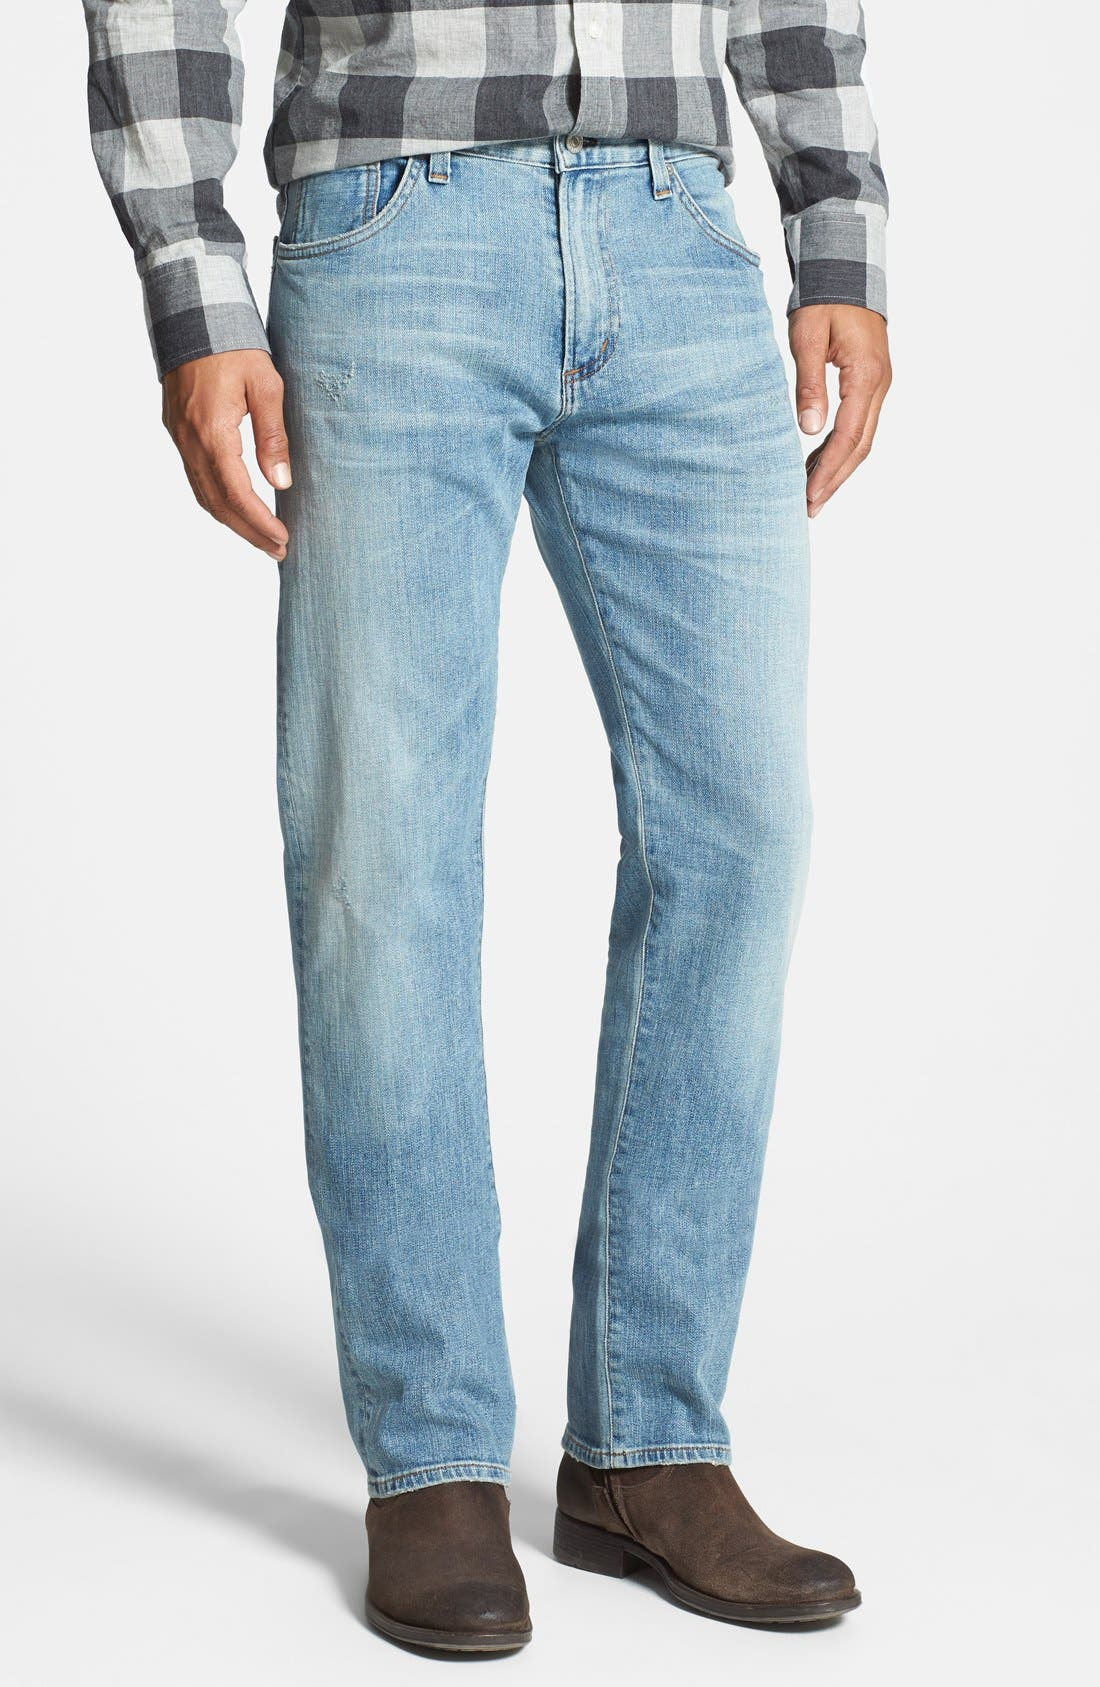 CITIZENS OF HUMANITY 'Core' Slim Straight Leg Jeans, Main, color, 458